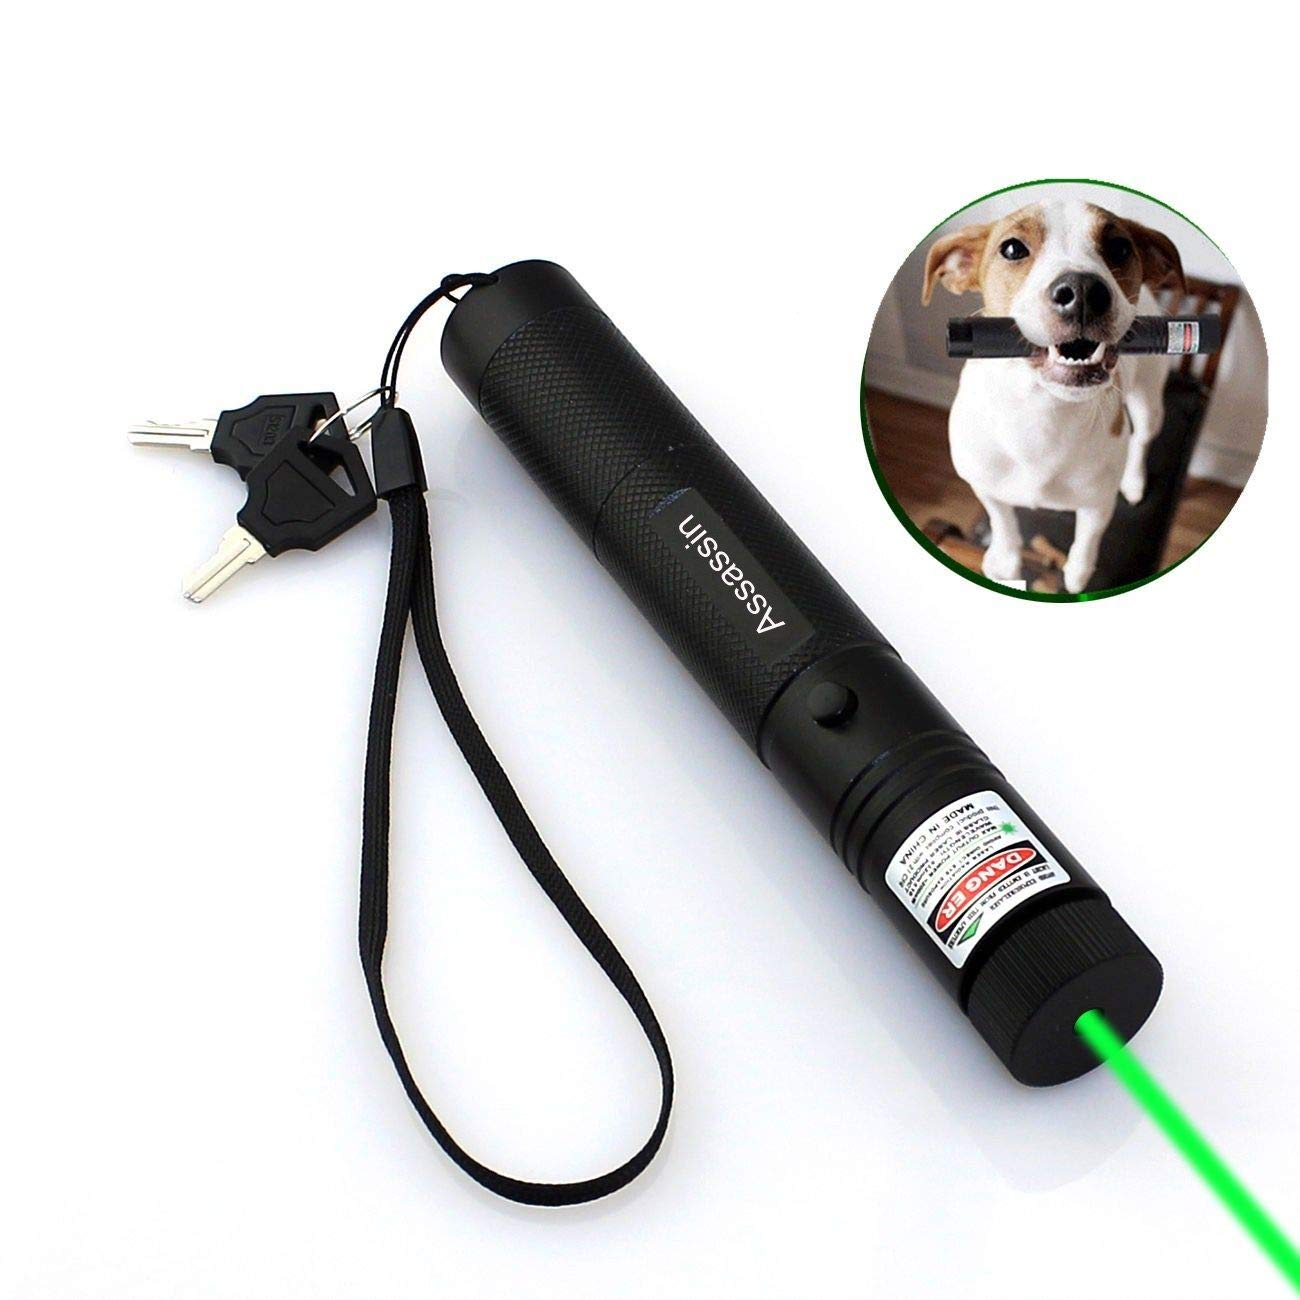 Assassin Tactical Green Hunting Rifle Scope Sight Laser Pen Remote Pen Pointer Projector Travel Outdoor Flashlight Interactive Baton Funny Laser Toy (Green)